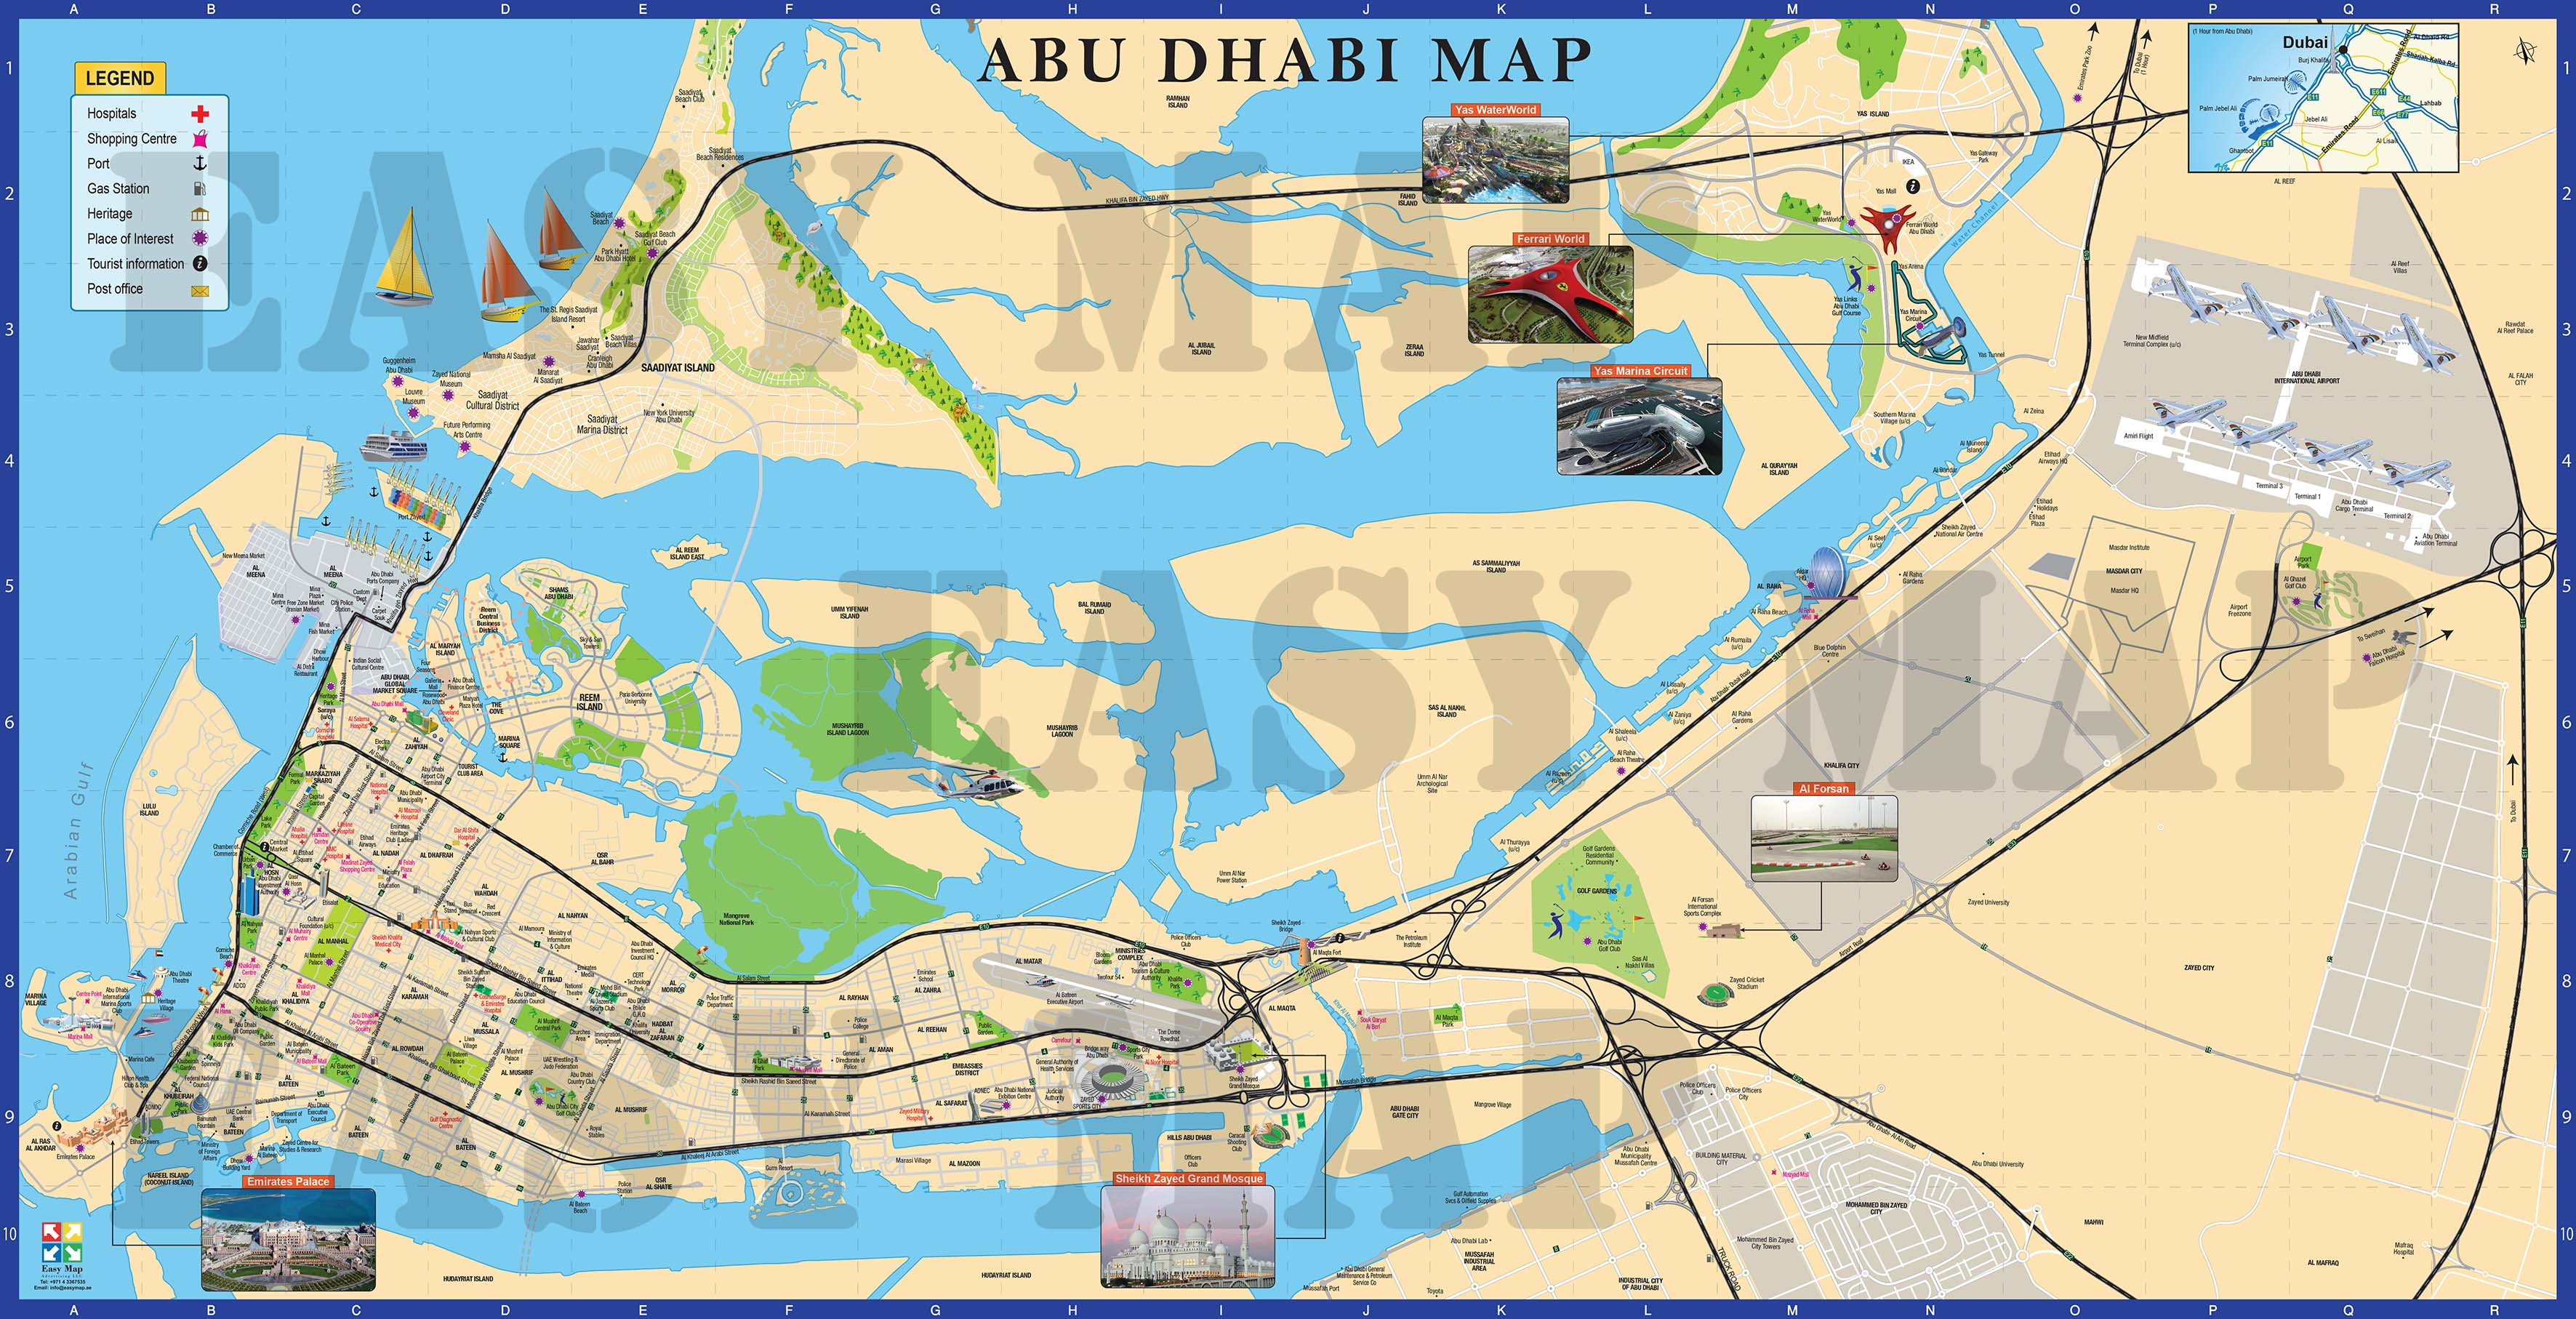 Abu Dhabi 2D map